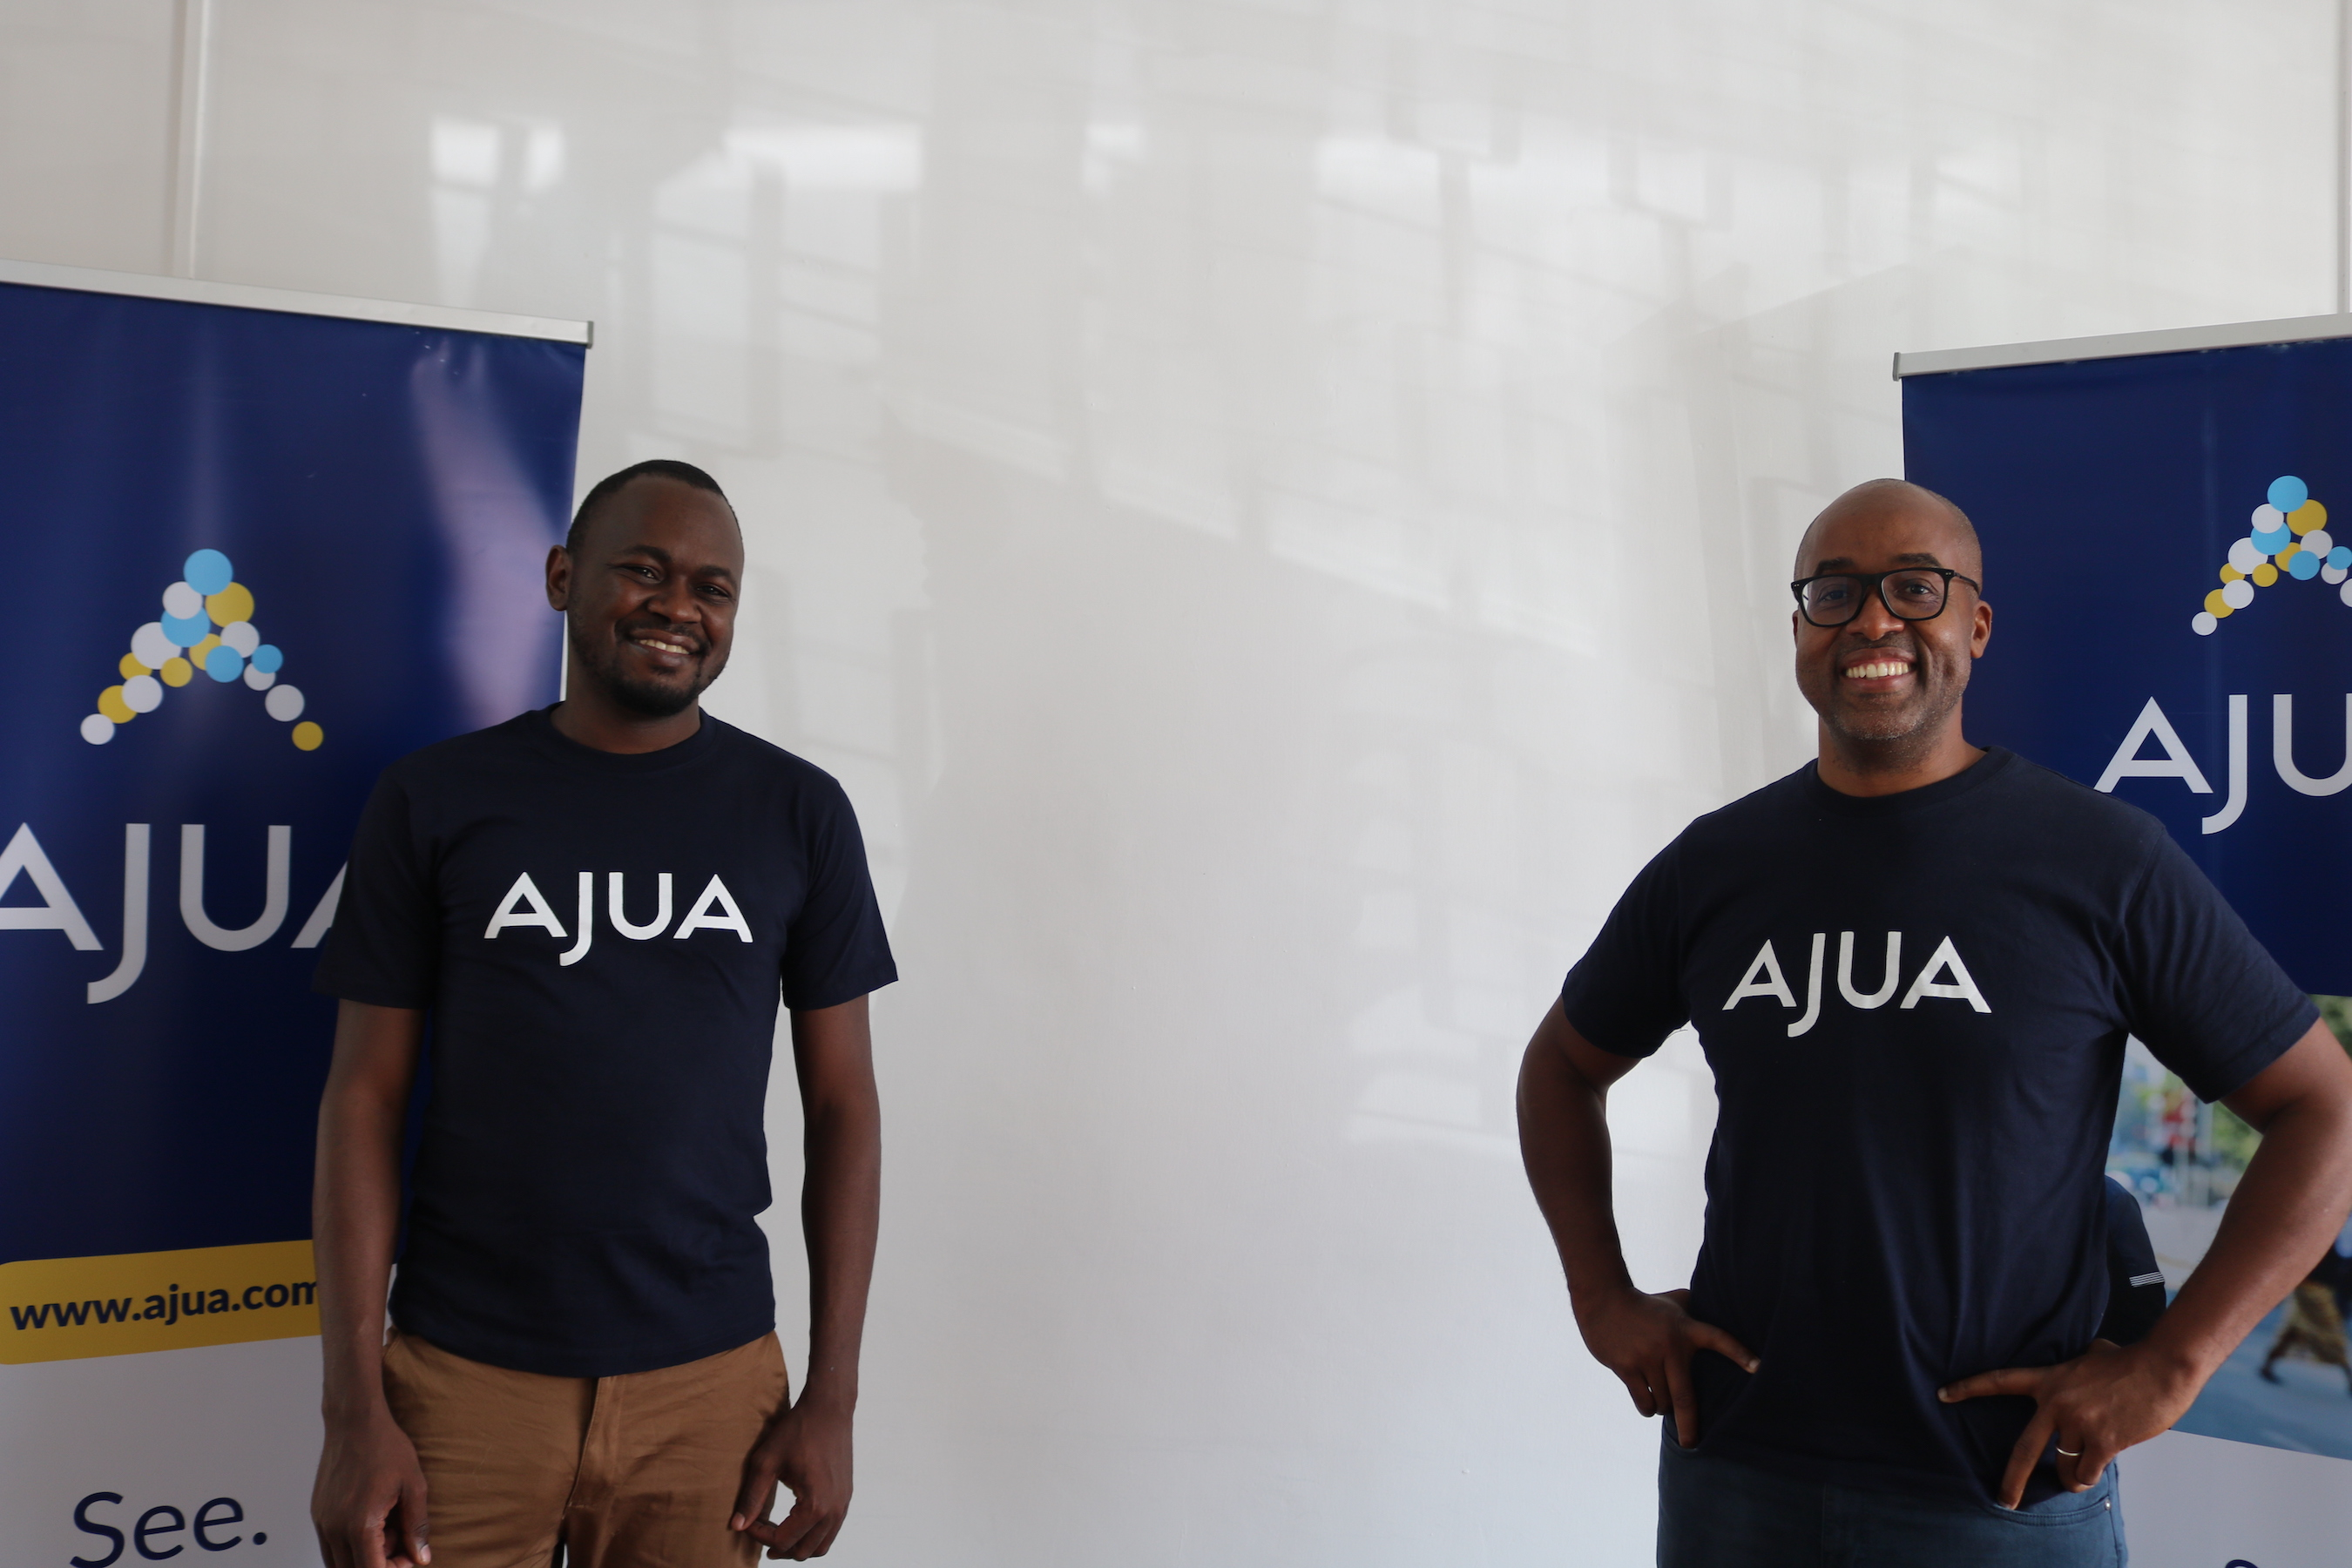 Kenya's Ajua acquires WayaWaya to consolidate consumer experience play in African SMEs